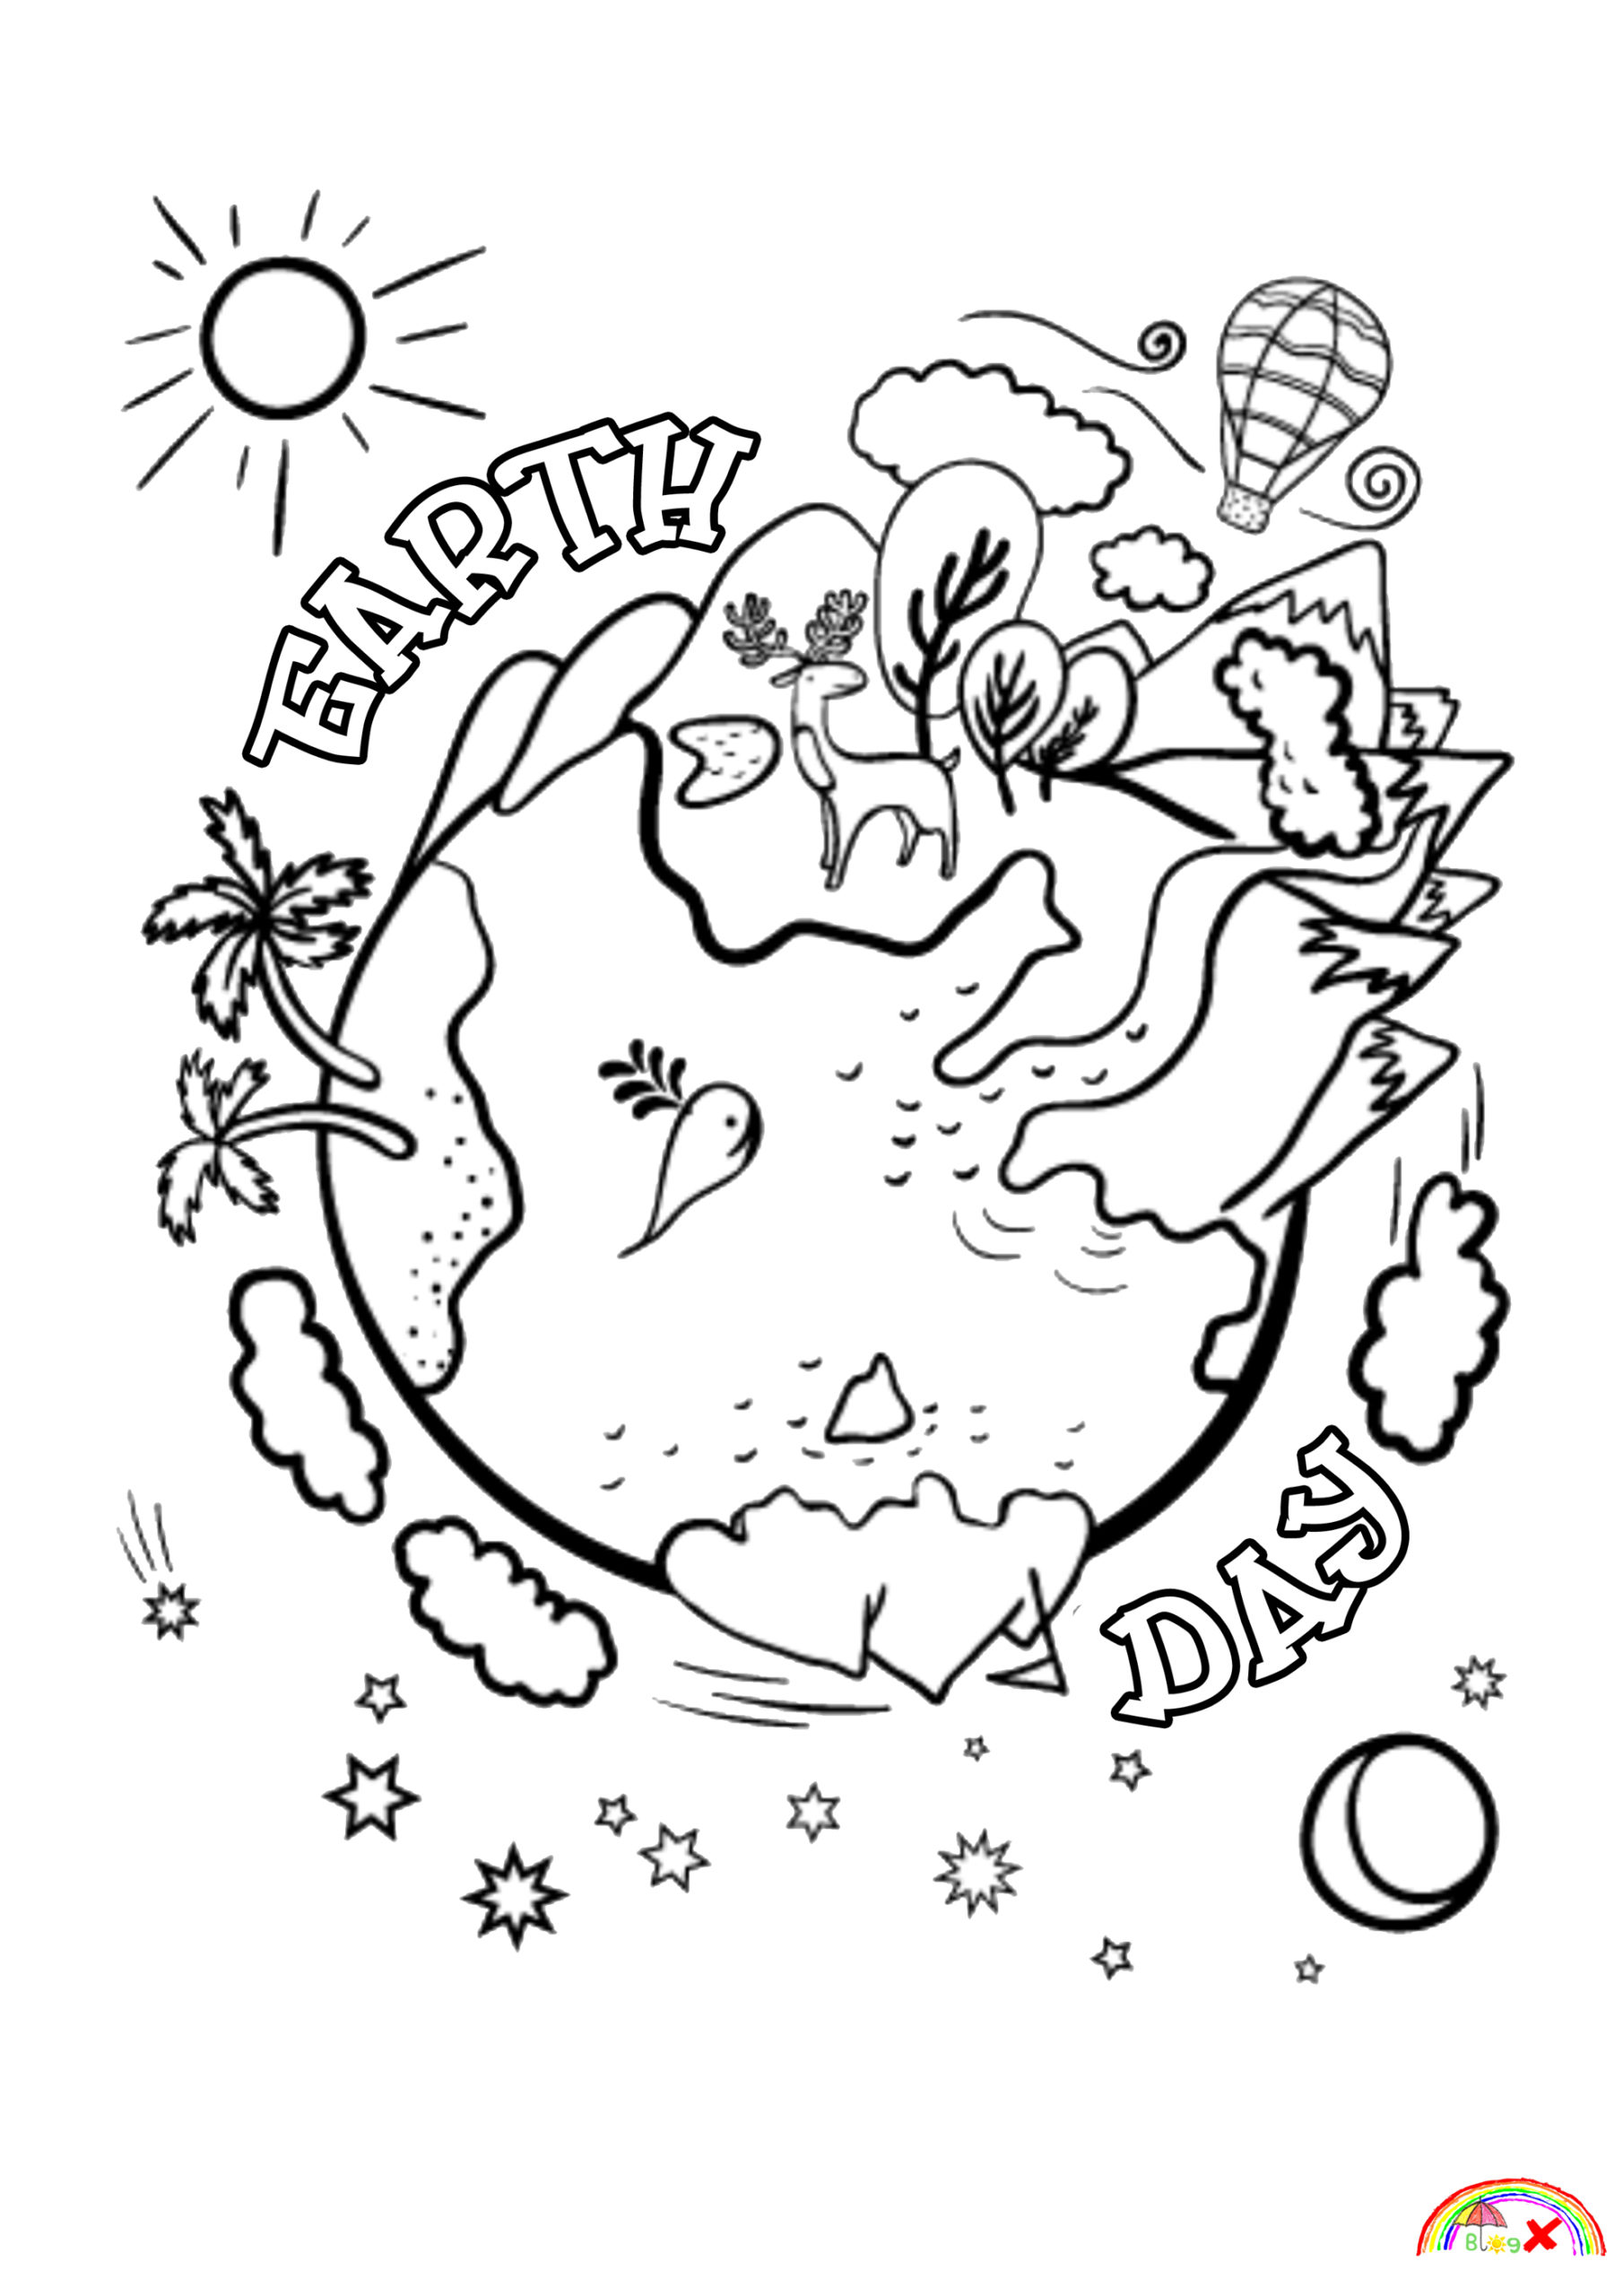 earth day coloring pictures happy earth day coloring pages free download and print day pictures earth coloring